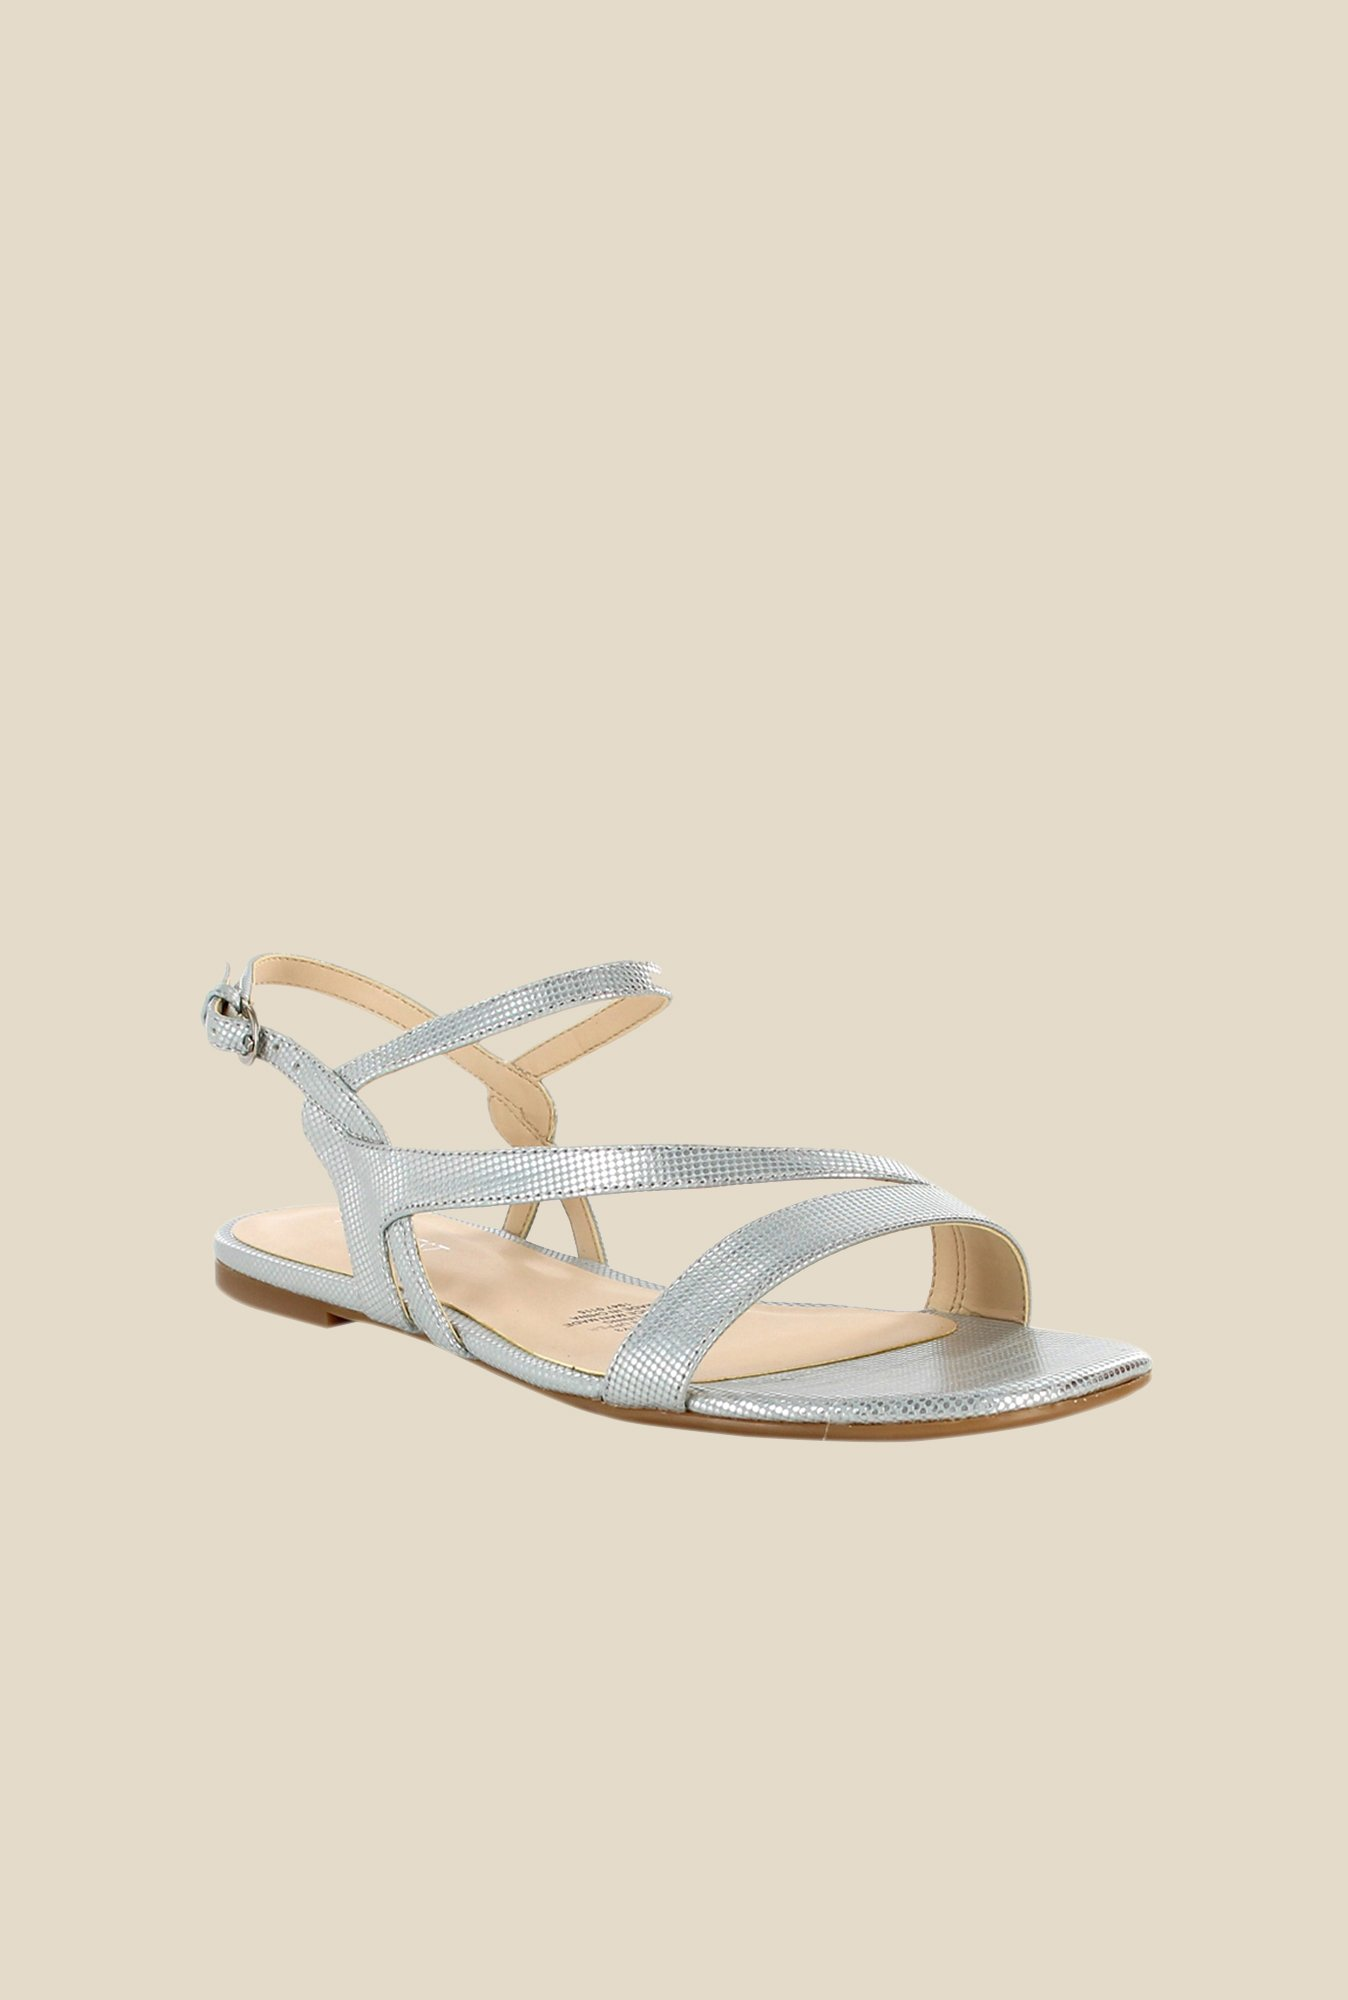 Nine West Silver Back Strap Sandals